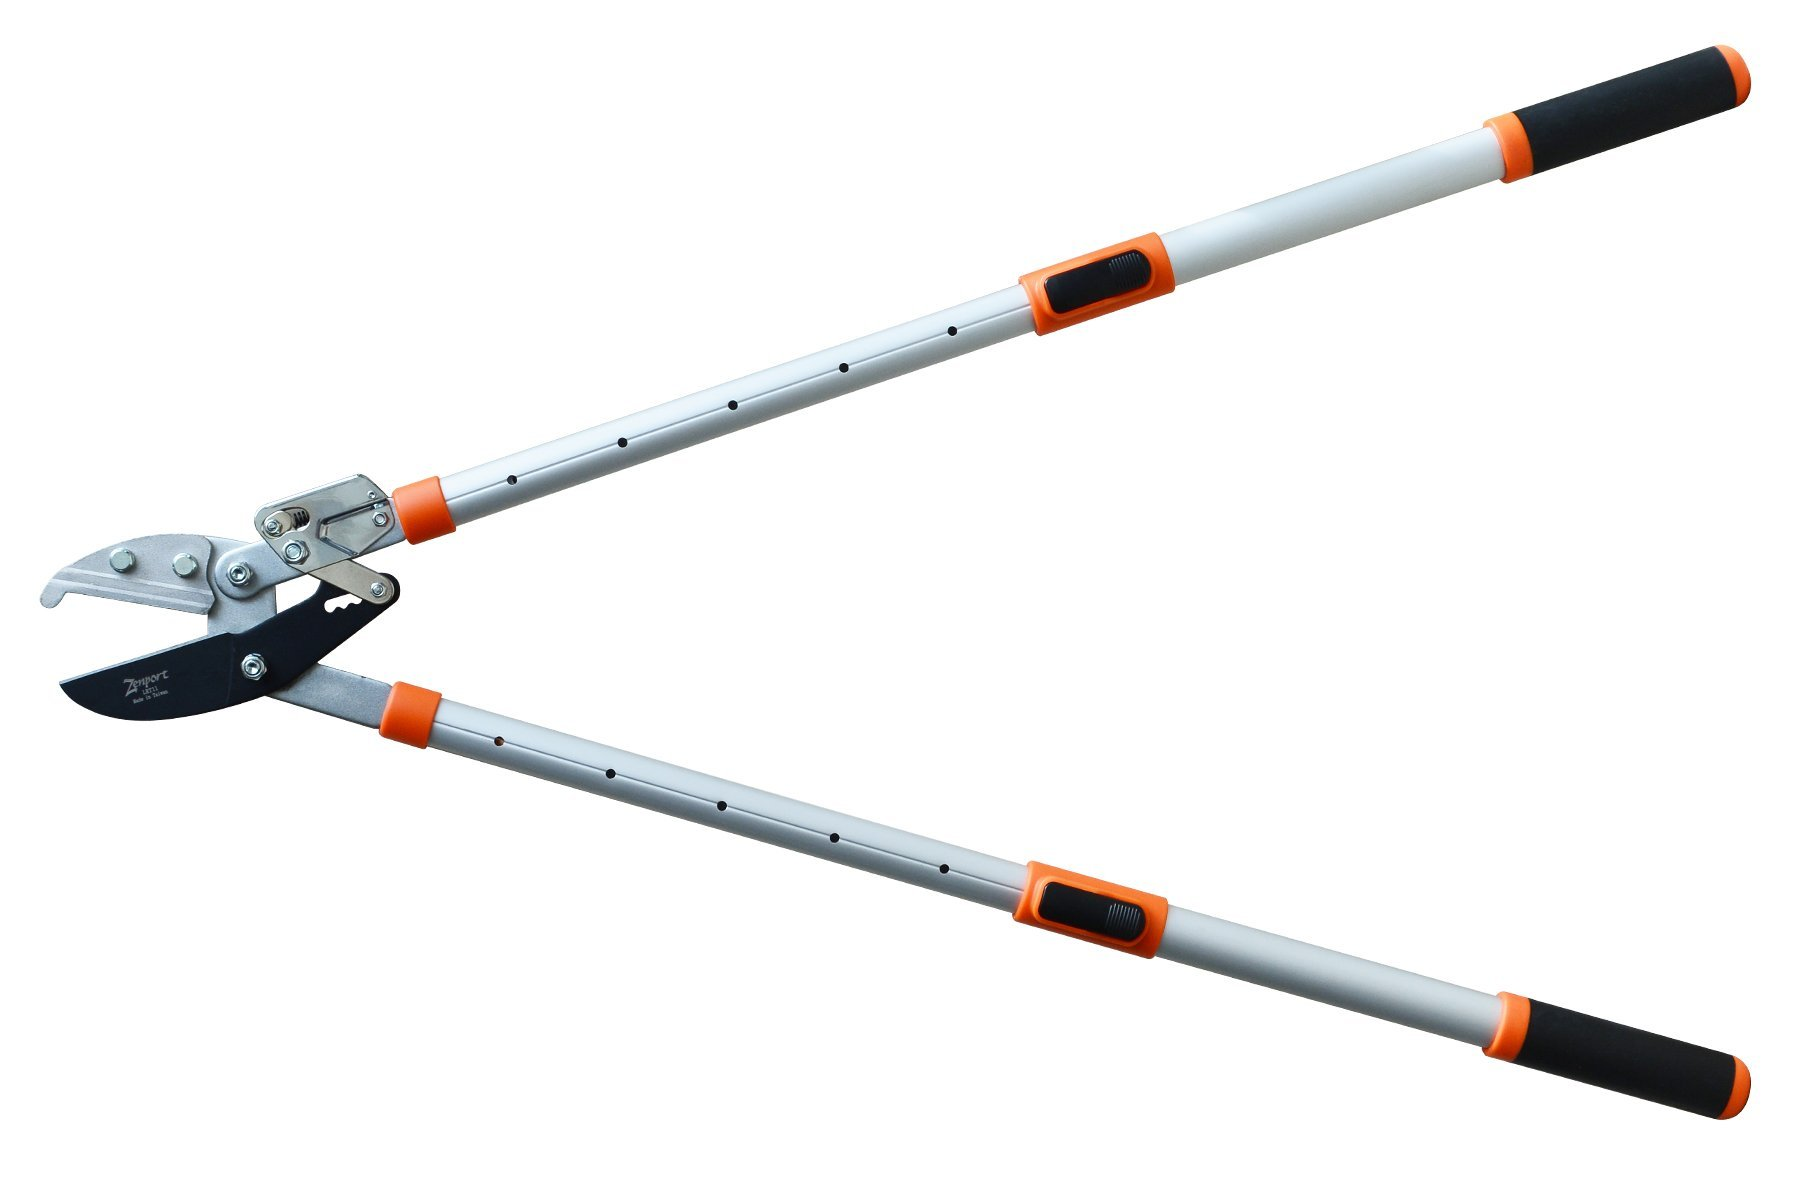 Zenport LRT11 Telescopic Ratchet Anvil Lopper, 23.5-Inch to 35.8-Inch by Zenport